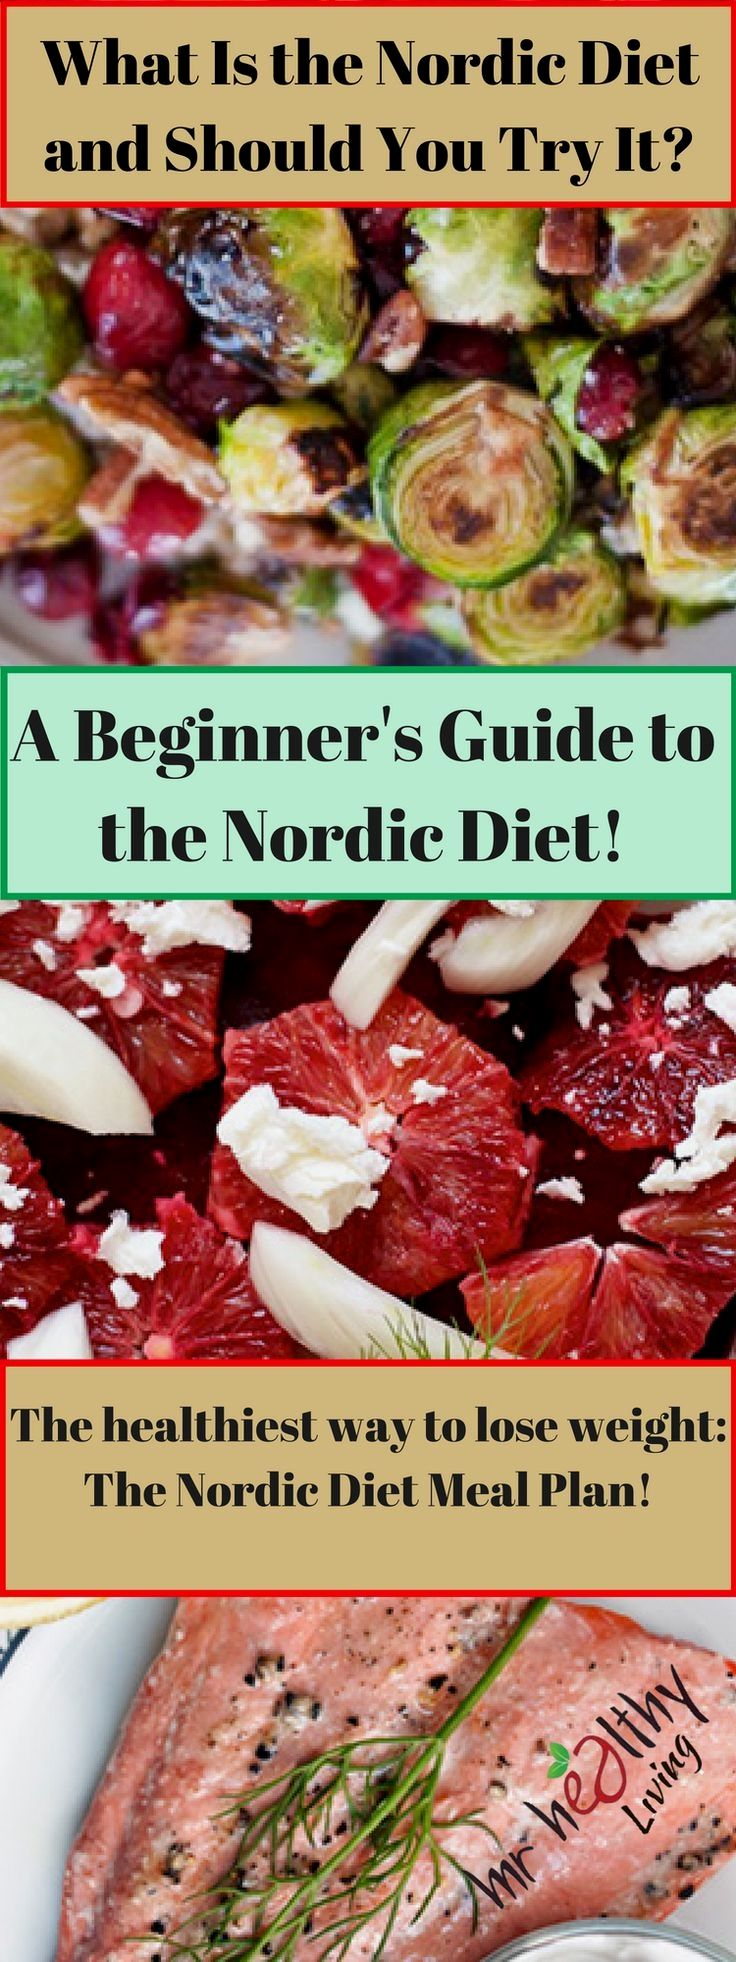 Thе Nоrdic Diеt. The Diet Was Inspired By The Habits From